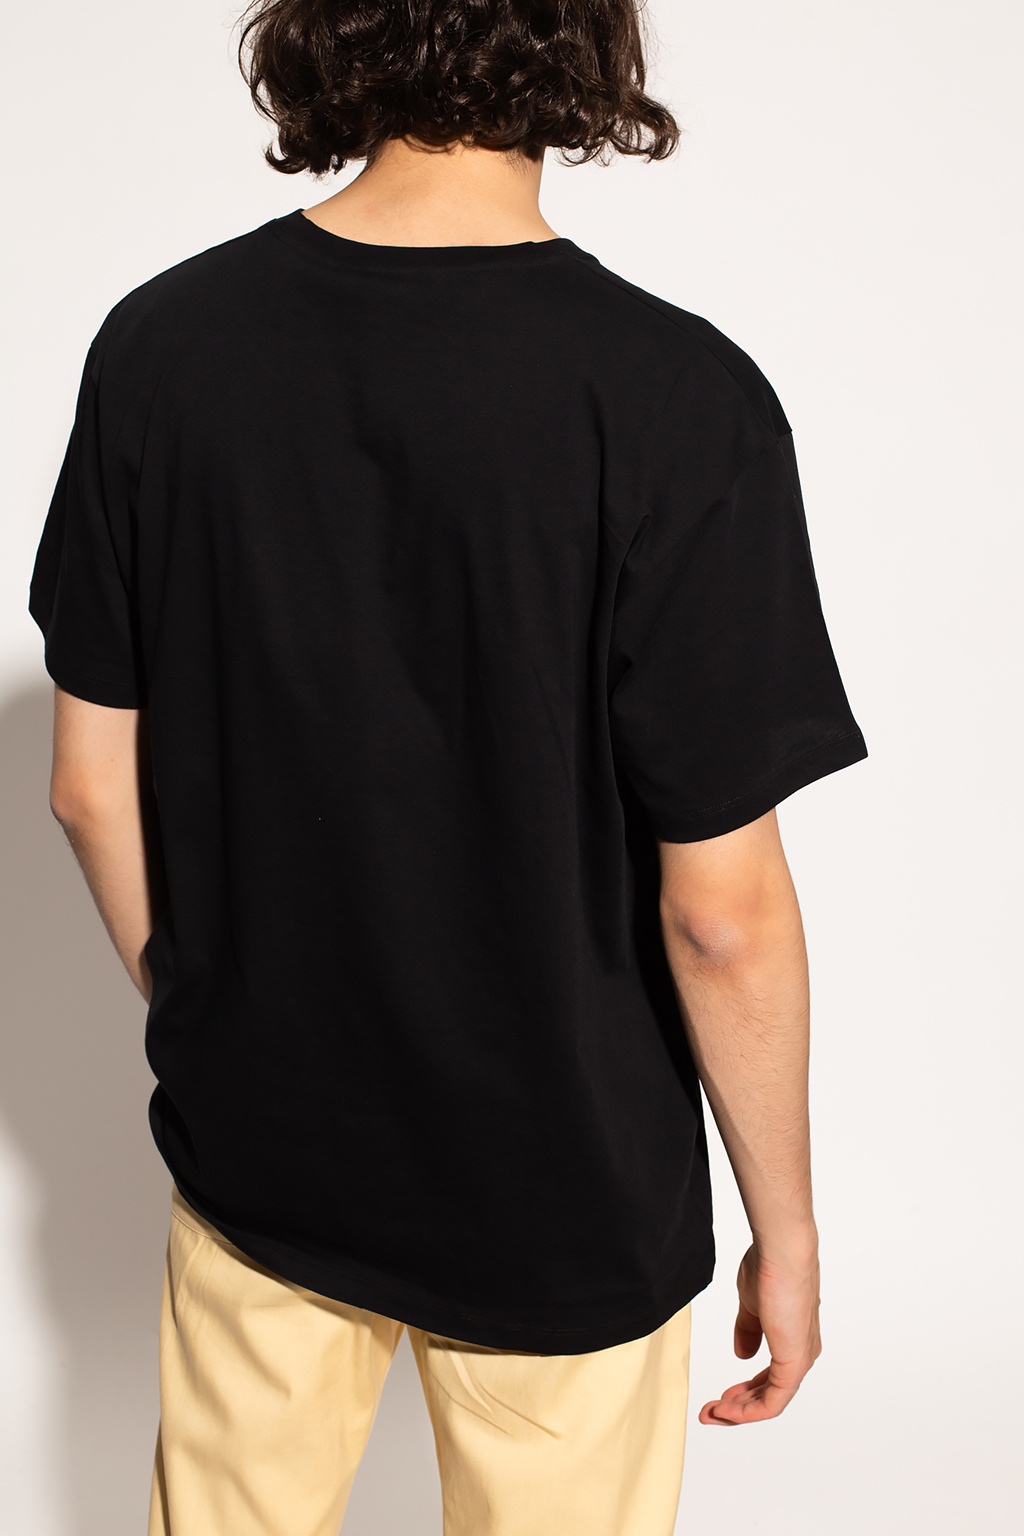 Gucci T-shirt with logo